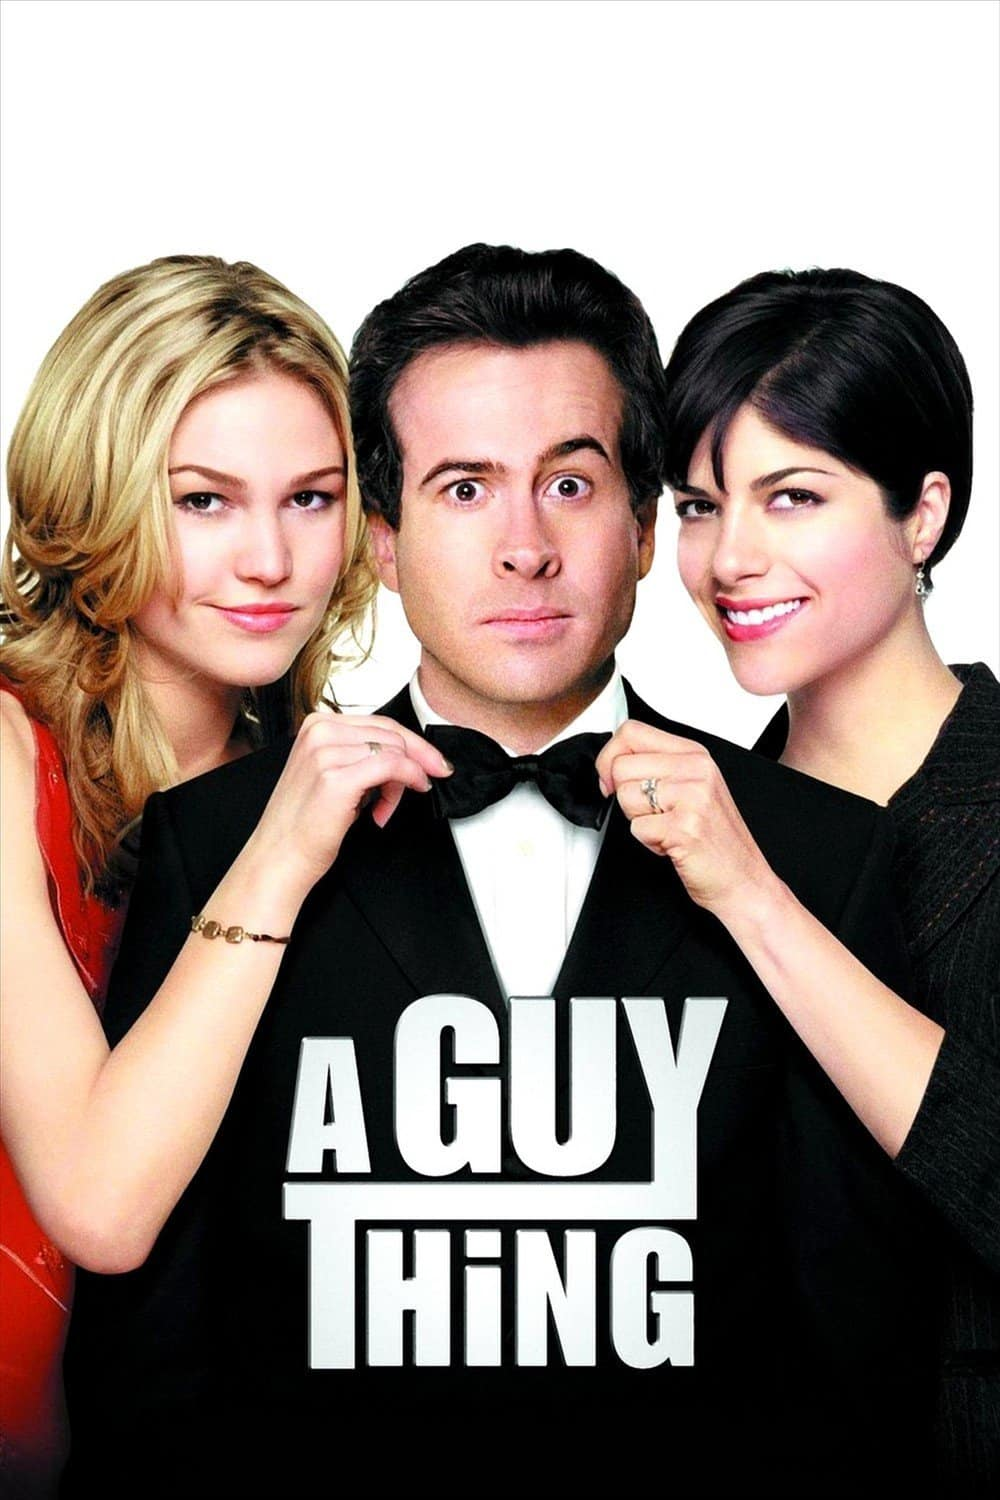 A Guy Thing, 2003